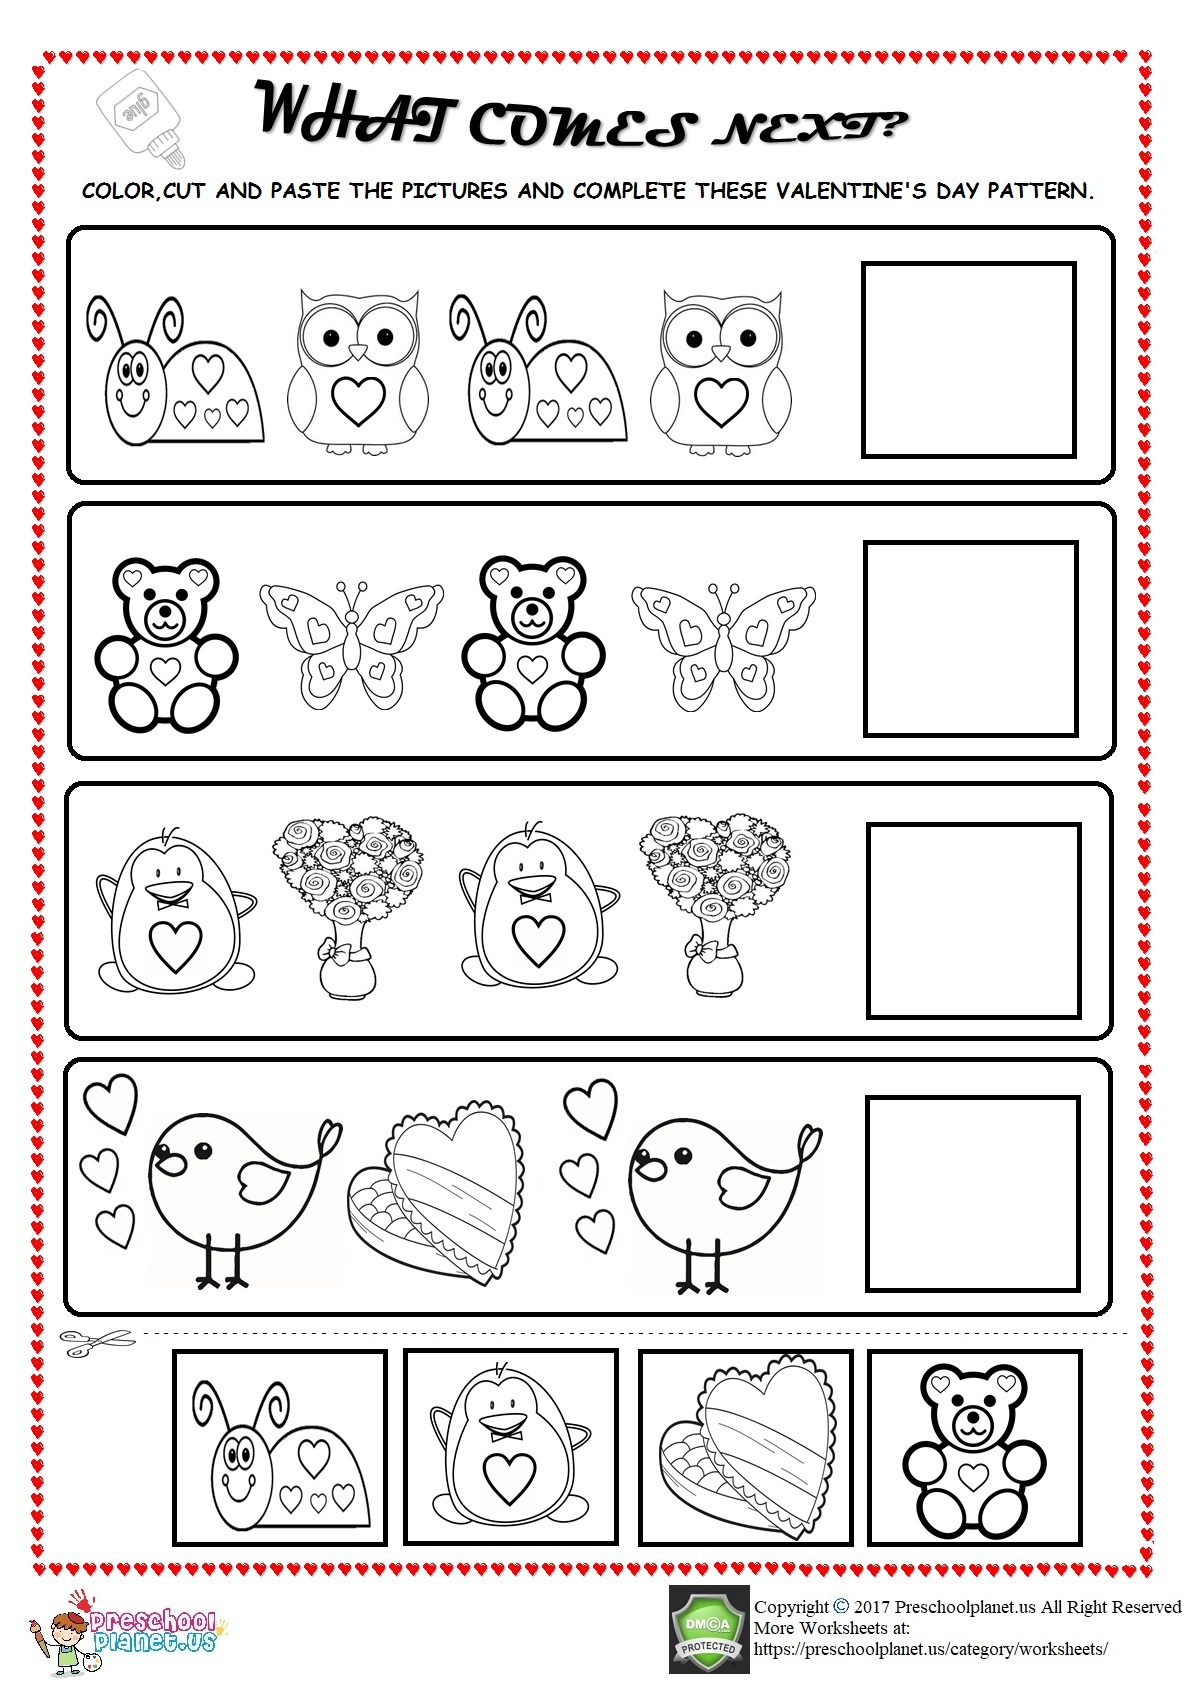 Valentine S Day Pattern Worksheet For Kids